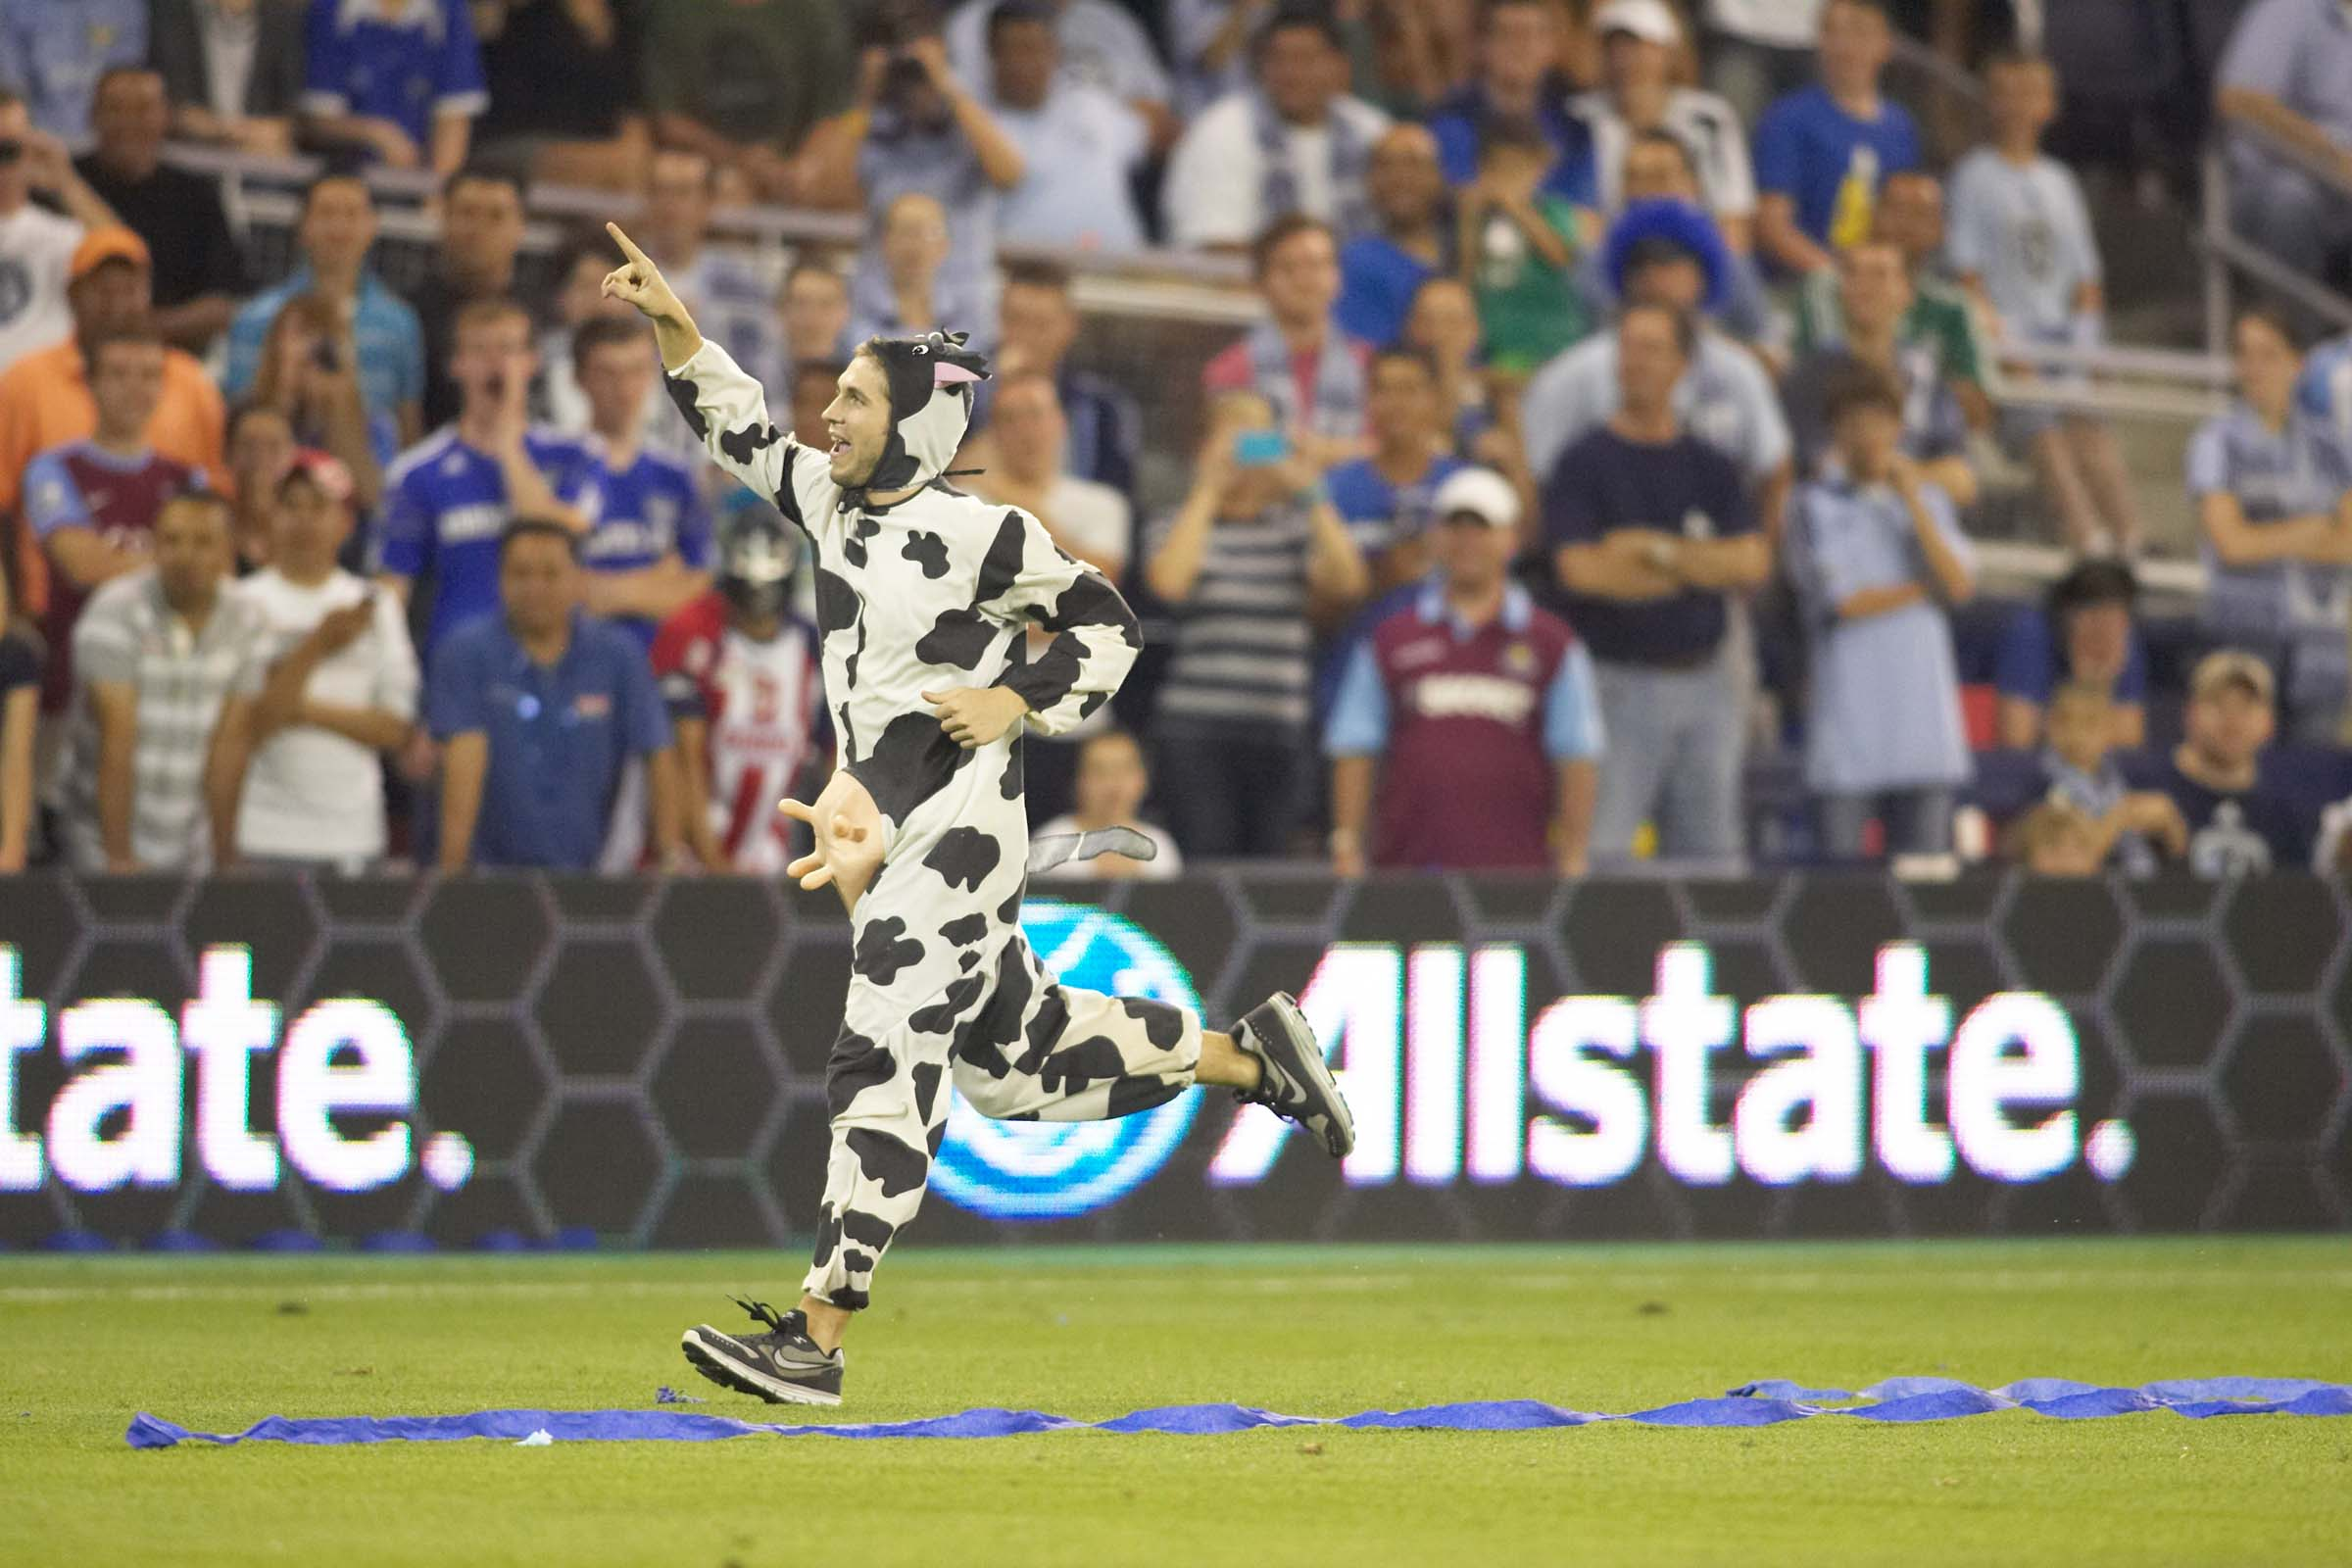 The guy in the cow suit